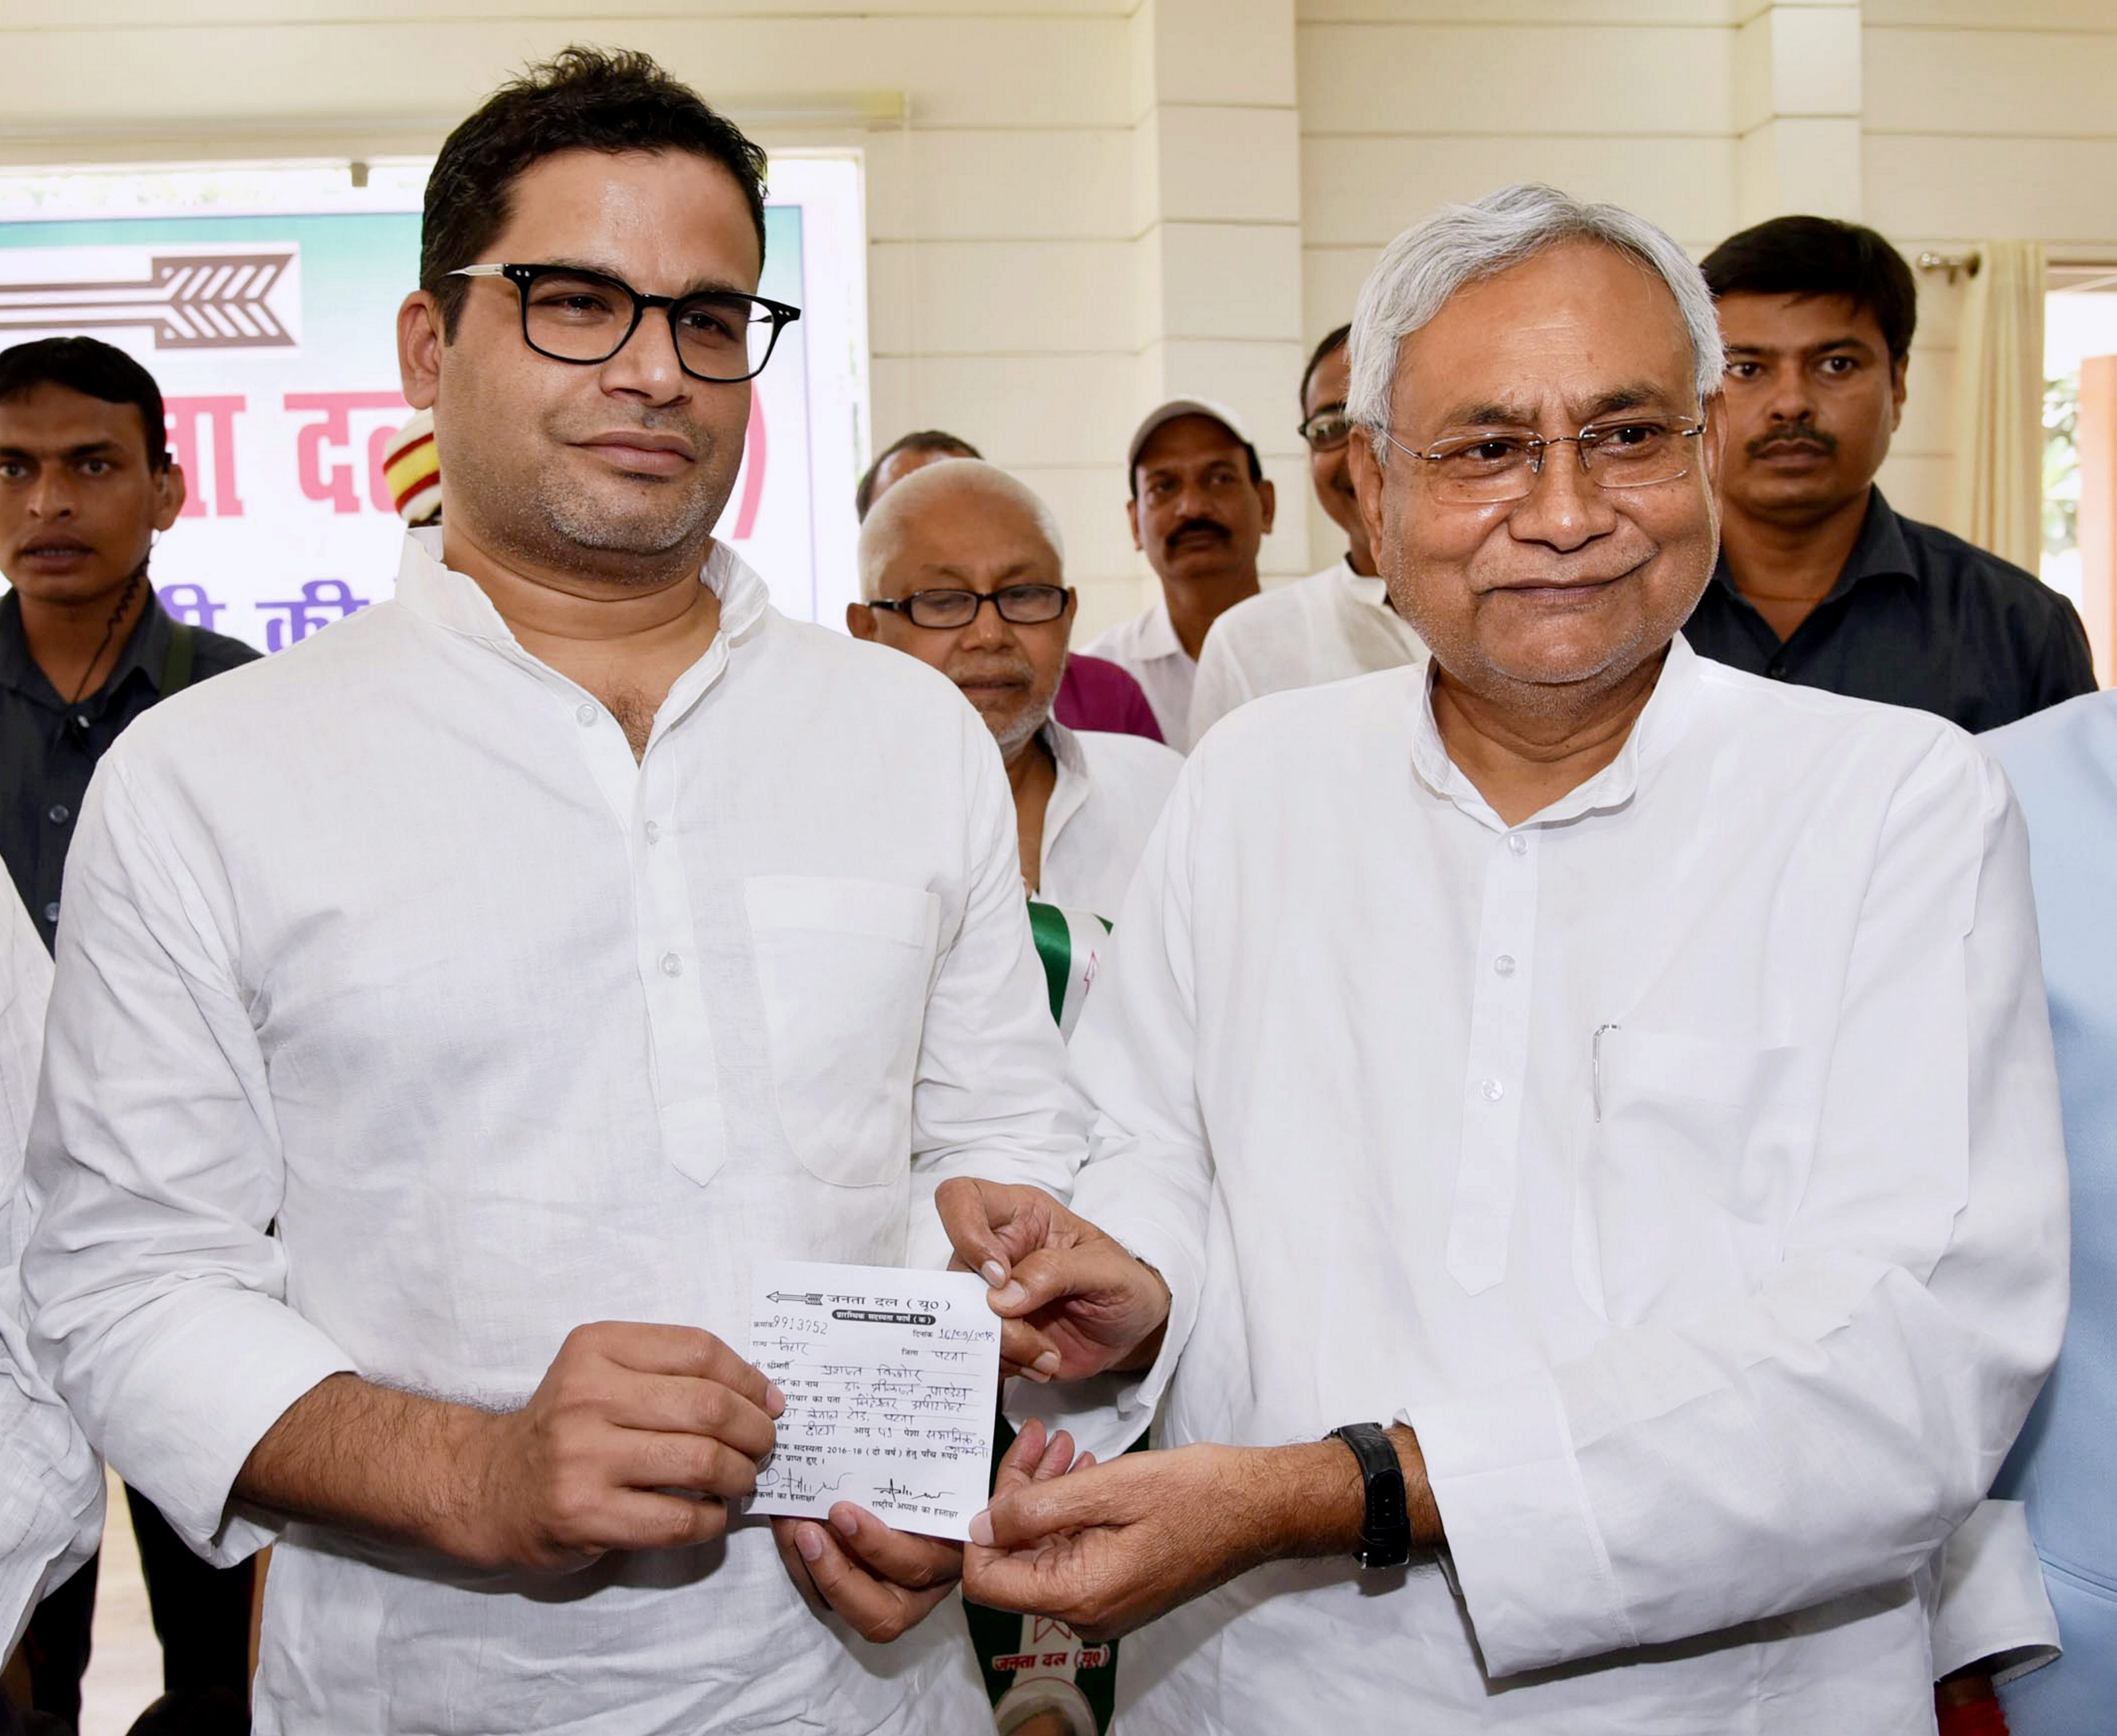 Bihar Chief Minister and Janta Dal United JD(U) National president Nitish Kumar greets electoral strategist Prashant Kishor after he joined JD(U) during party's state executive meeting at Anne Marg, in Patna, on September 16, 2018. PTI file photo